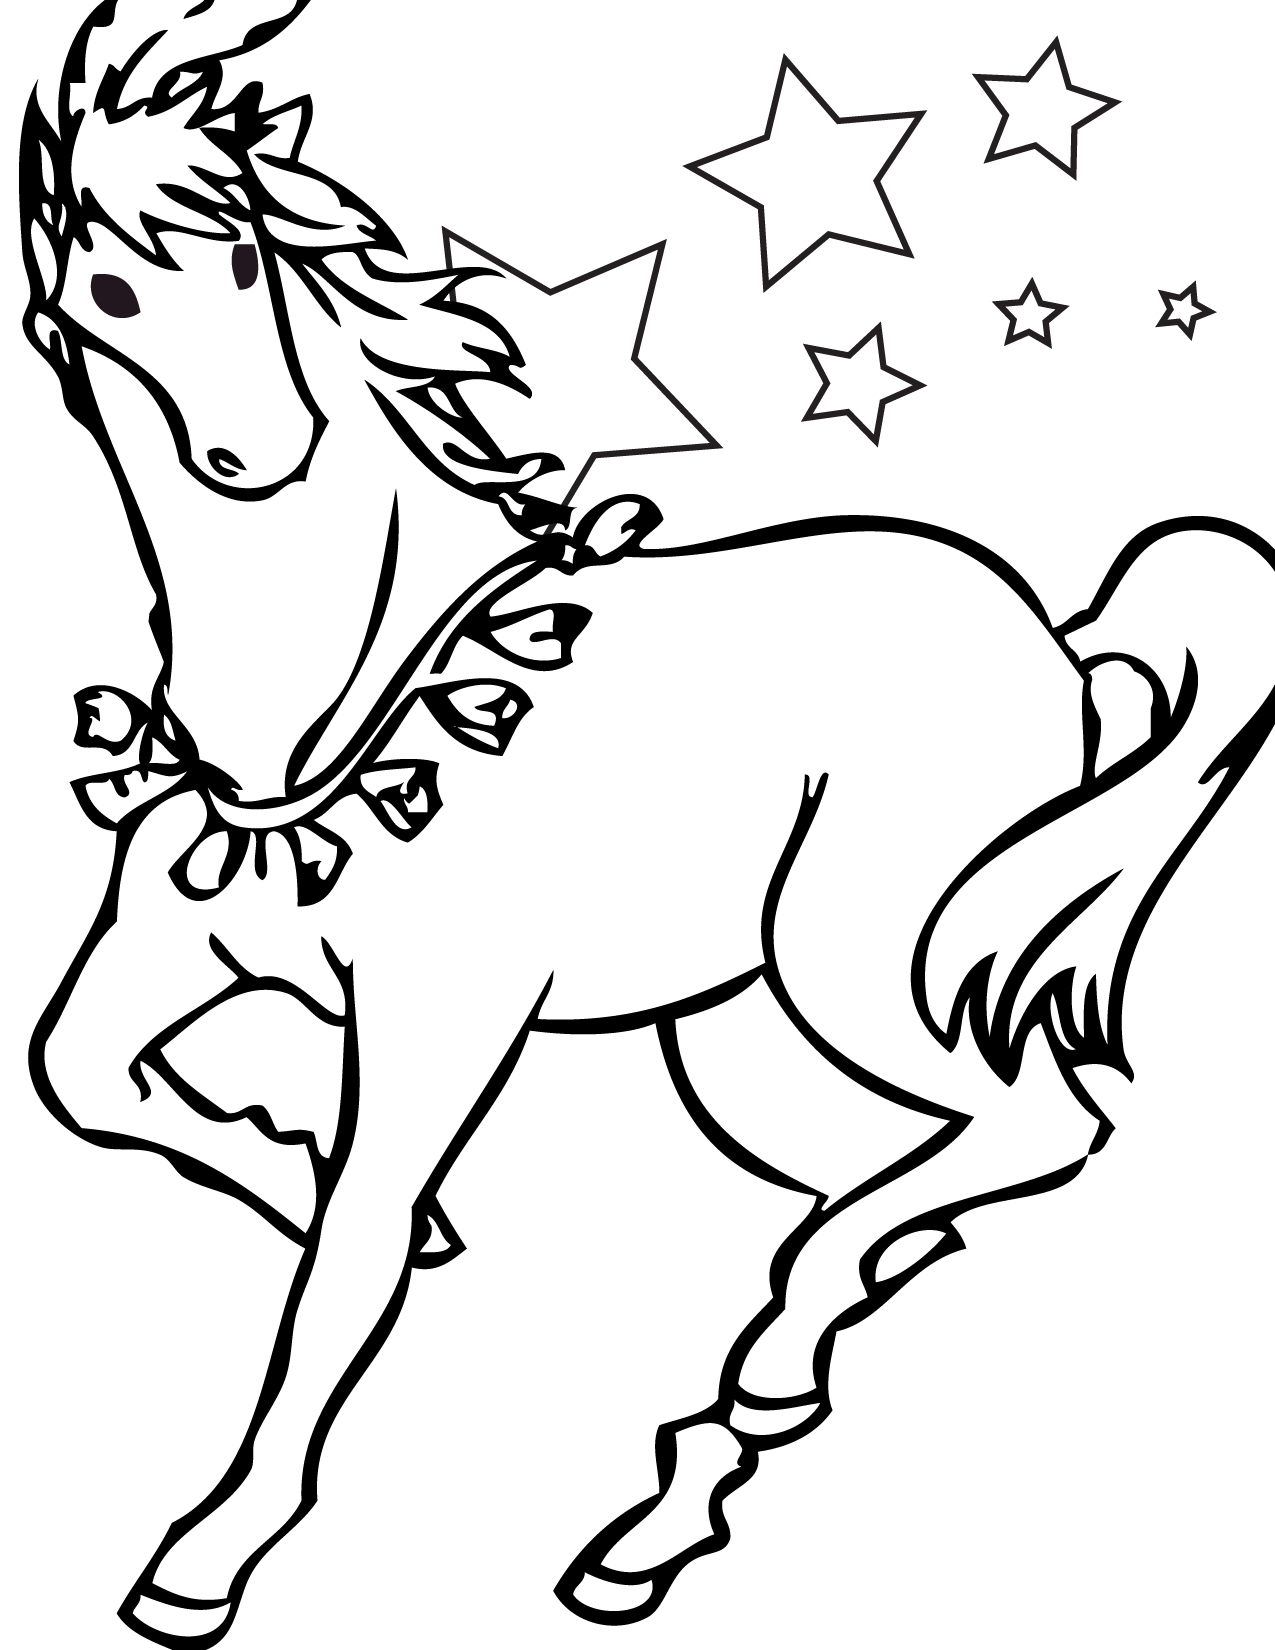 Free Printable Horse Coloring Pages For Kids Coloring Pages Of Horses